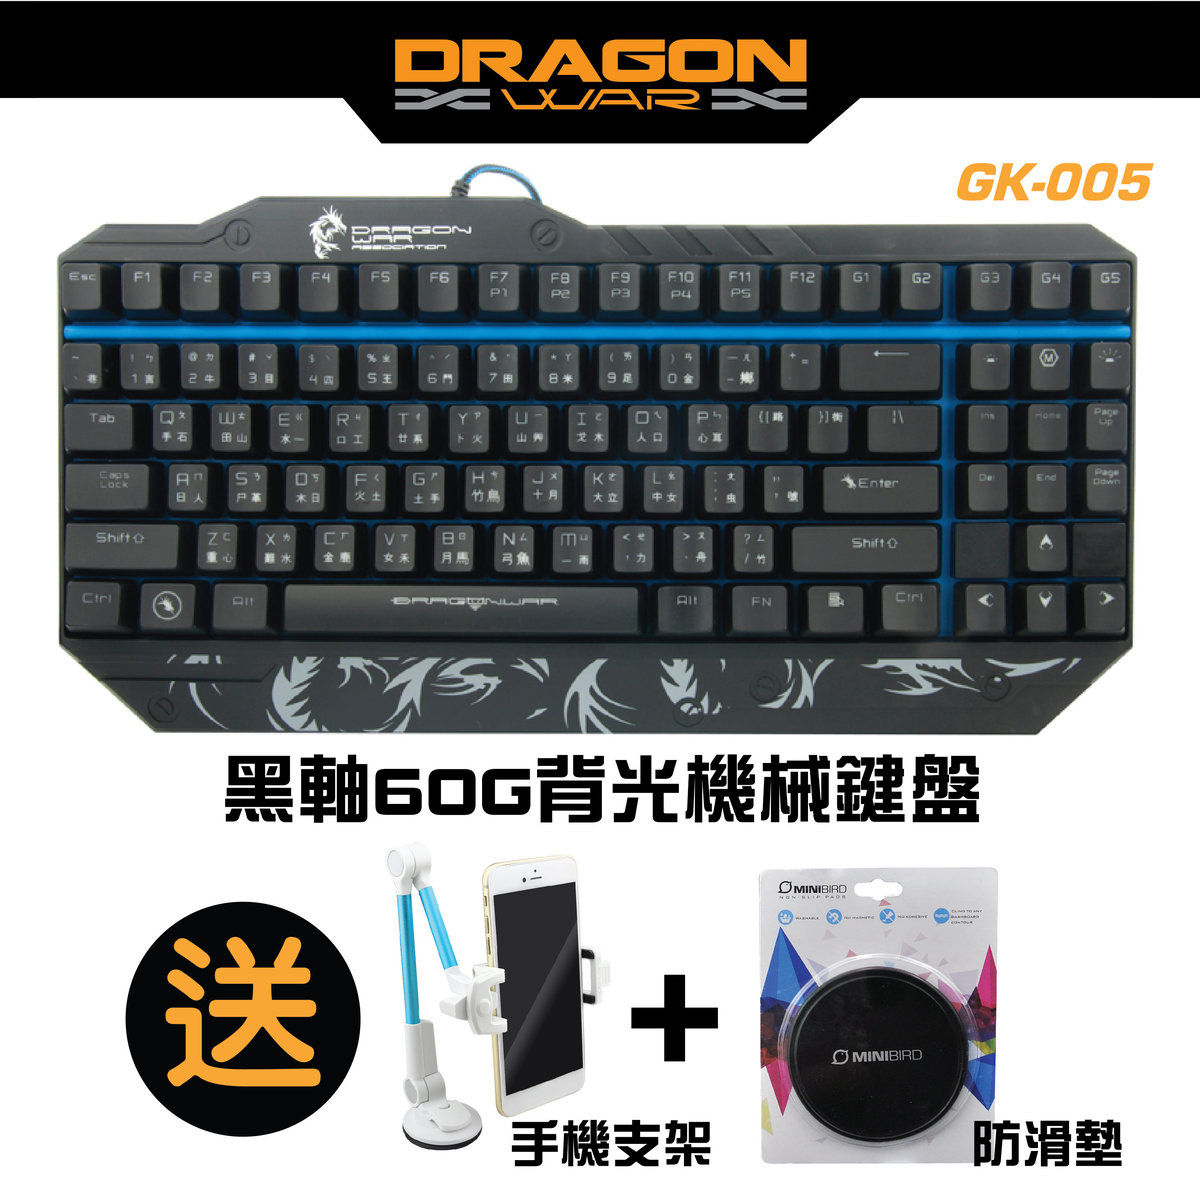 GK-005-CHI 25 MacroKeys Creation Gaming Keyboard free 2 gift